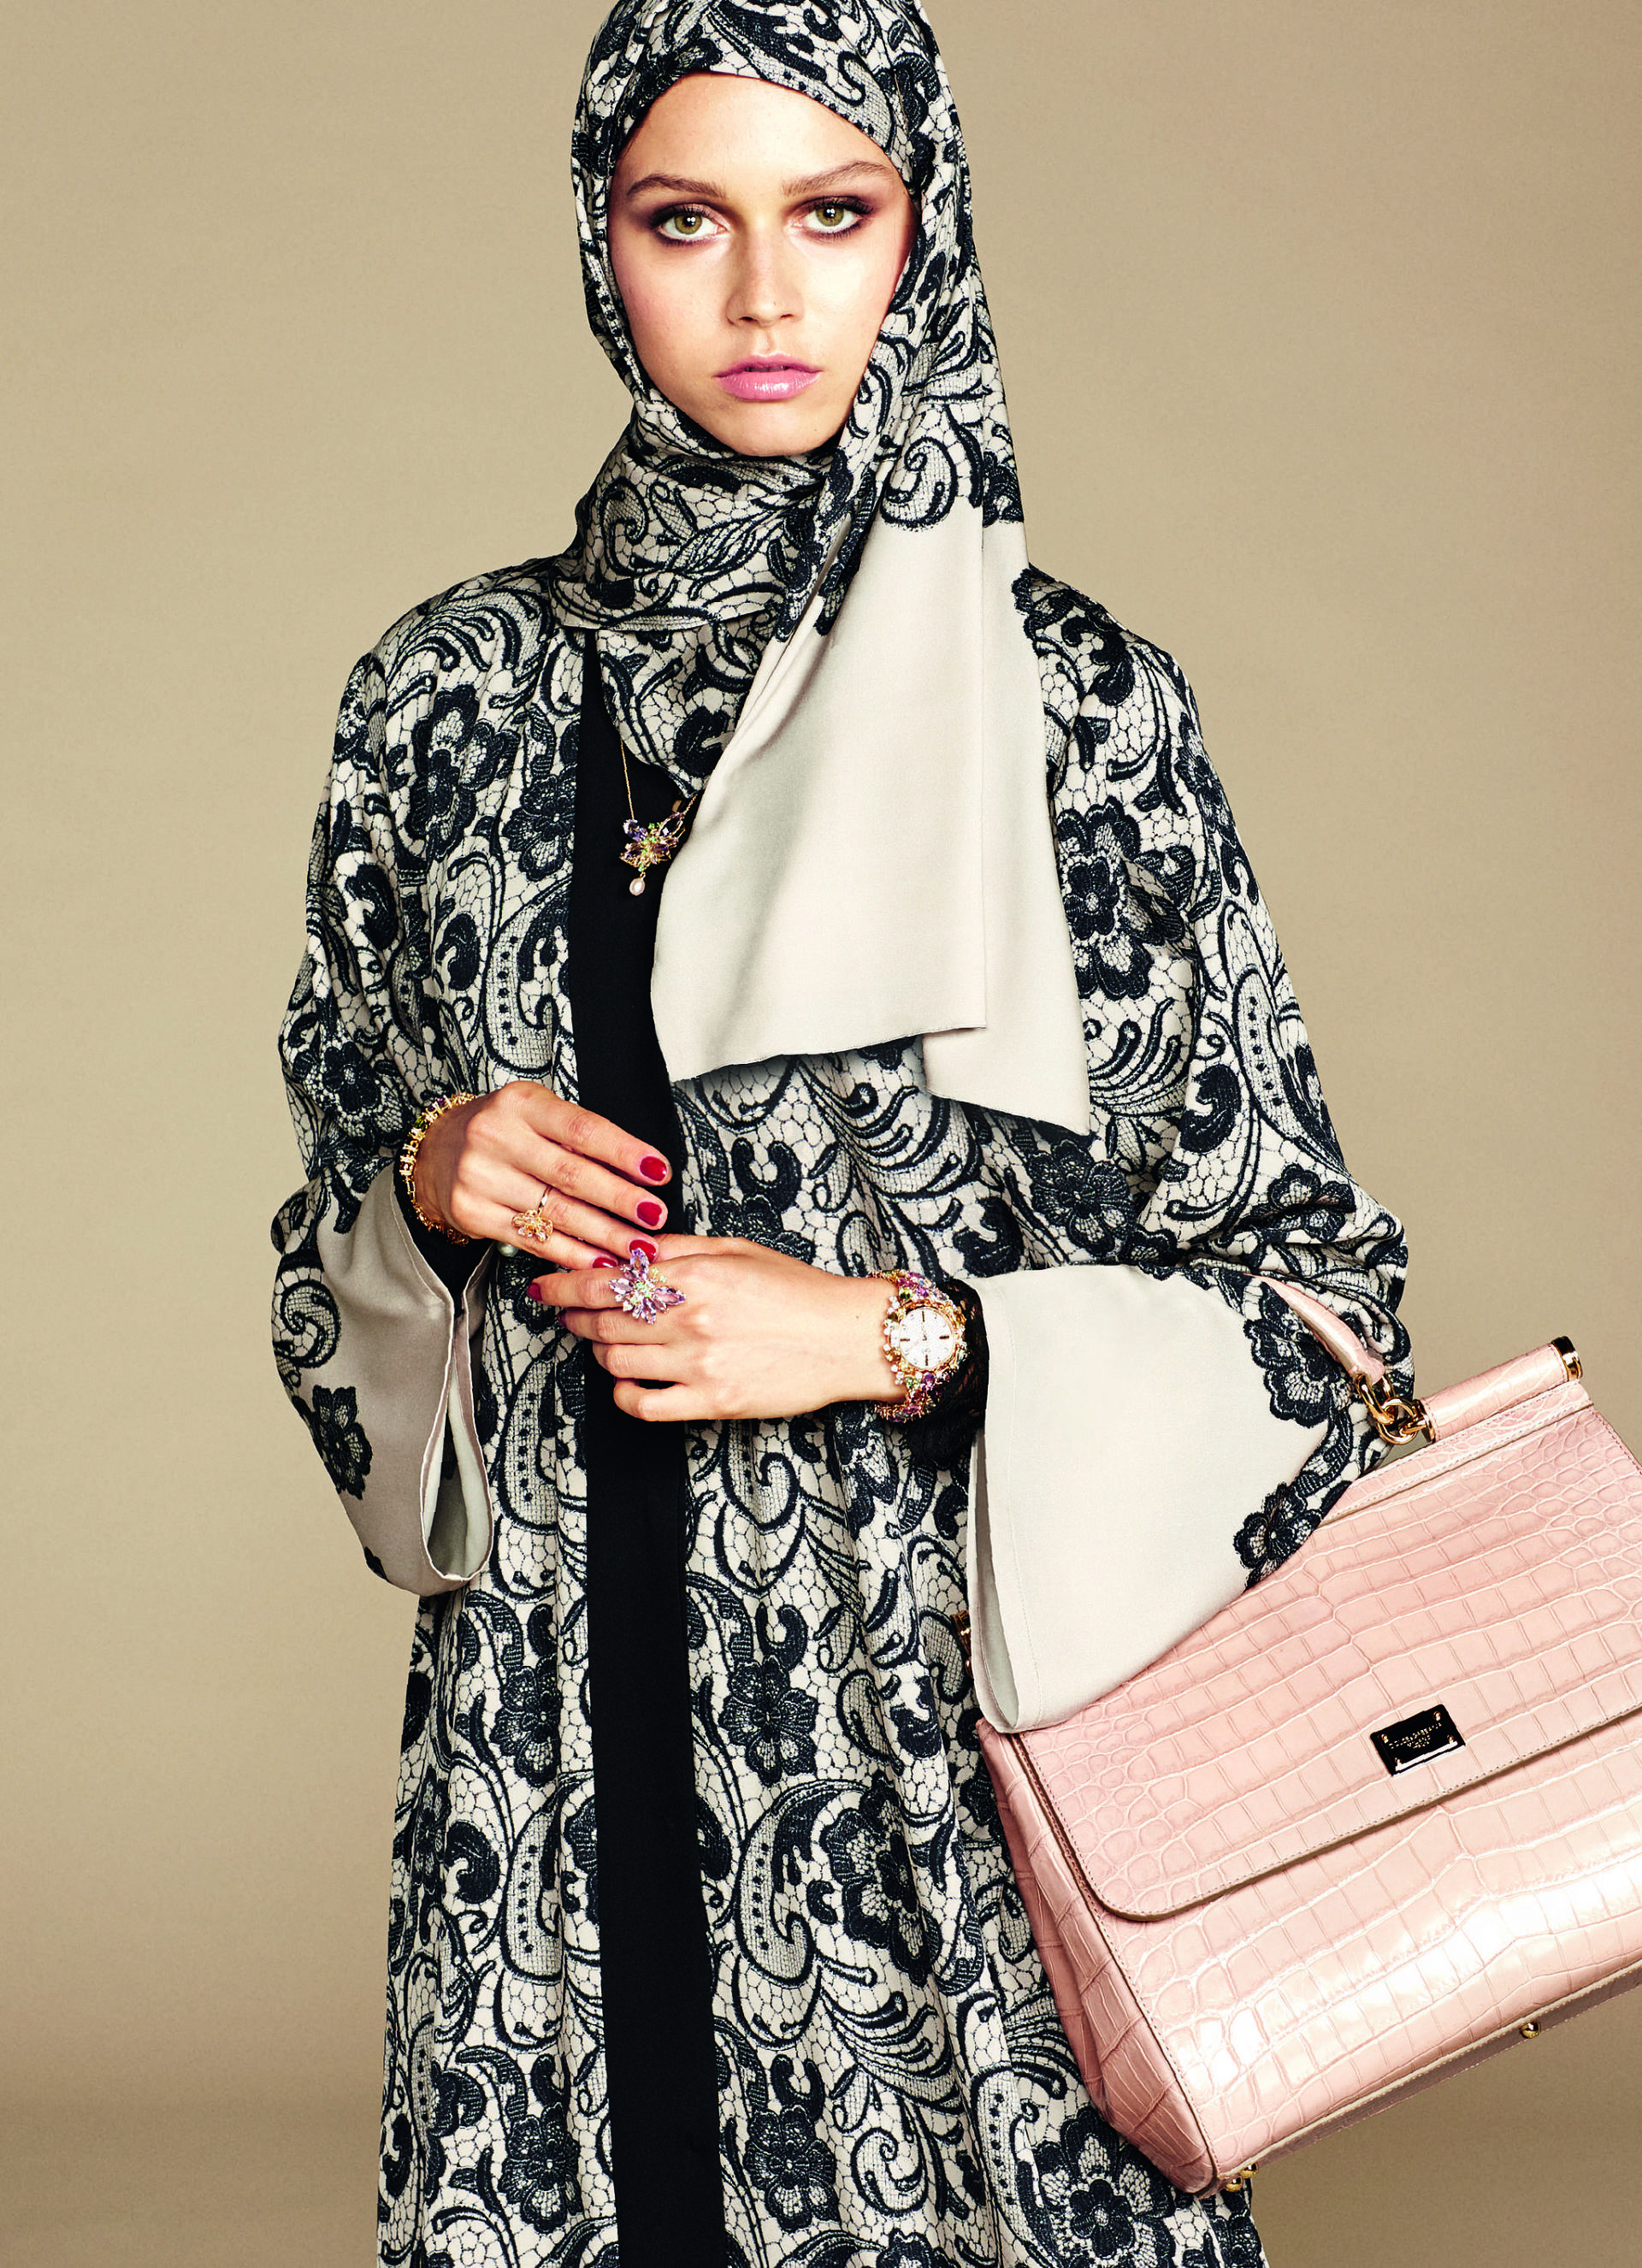 Over_Exposed_Dolce-Gabbana-Hijab-Abaya-Collection1